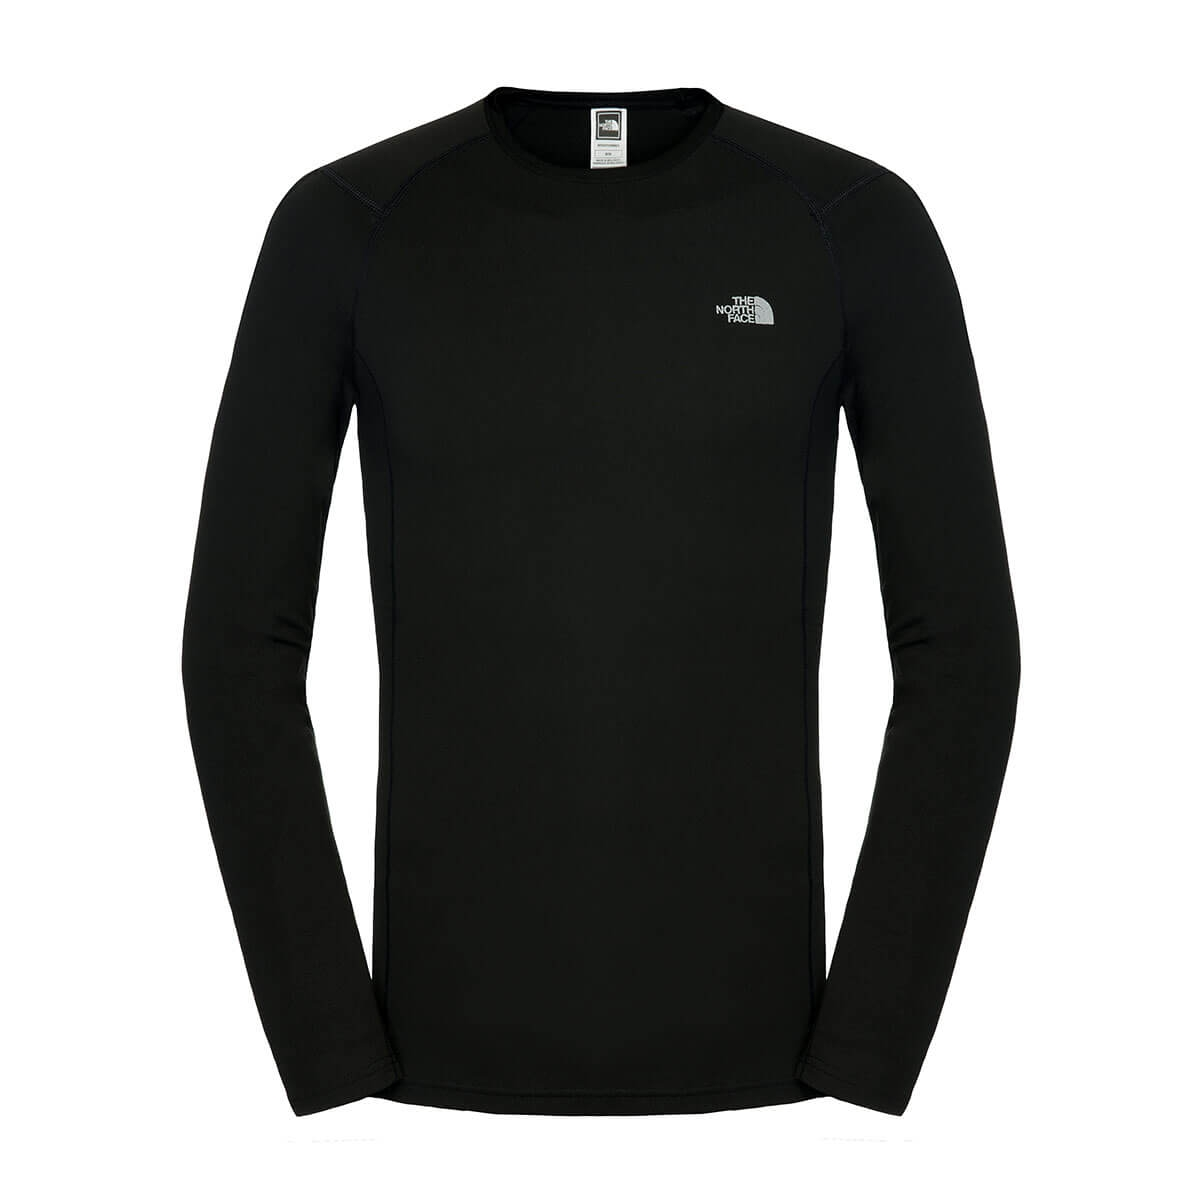 The North Face Men's Thermal Warm Long Sleeve Crew Neck TNF Black Size S